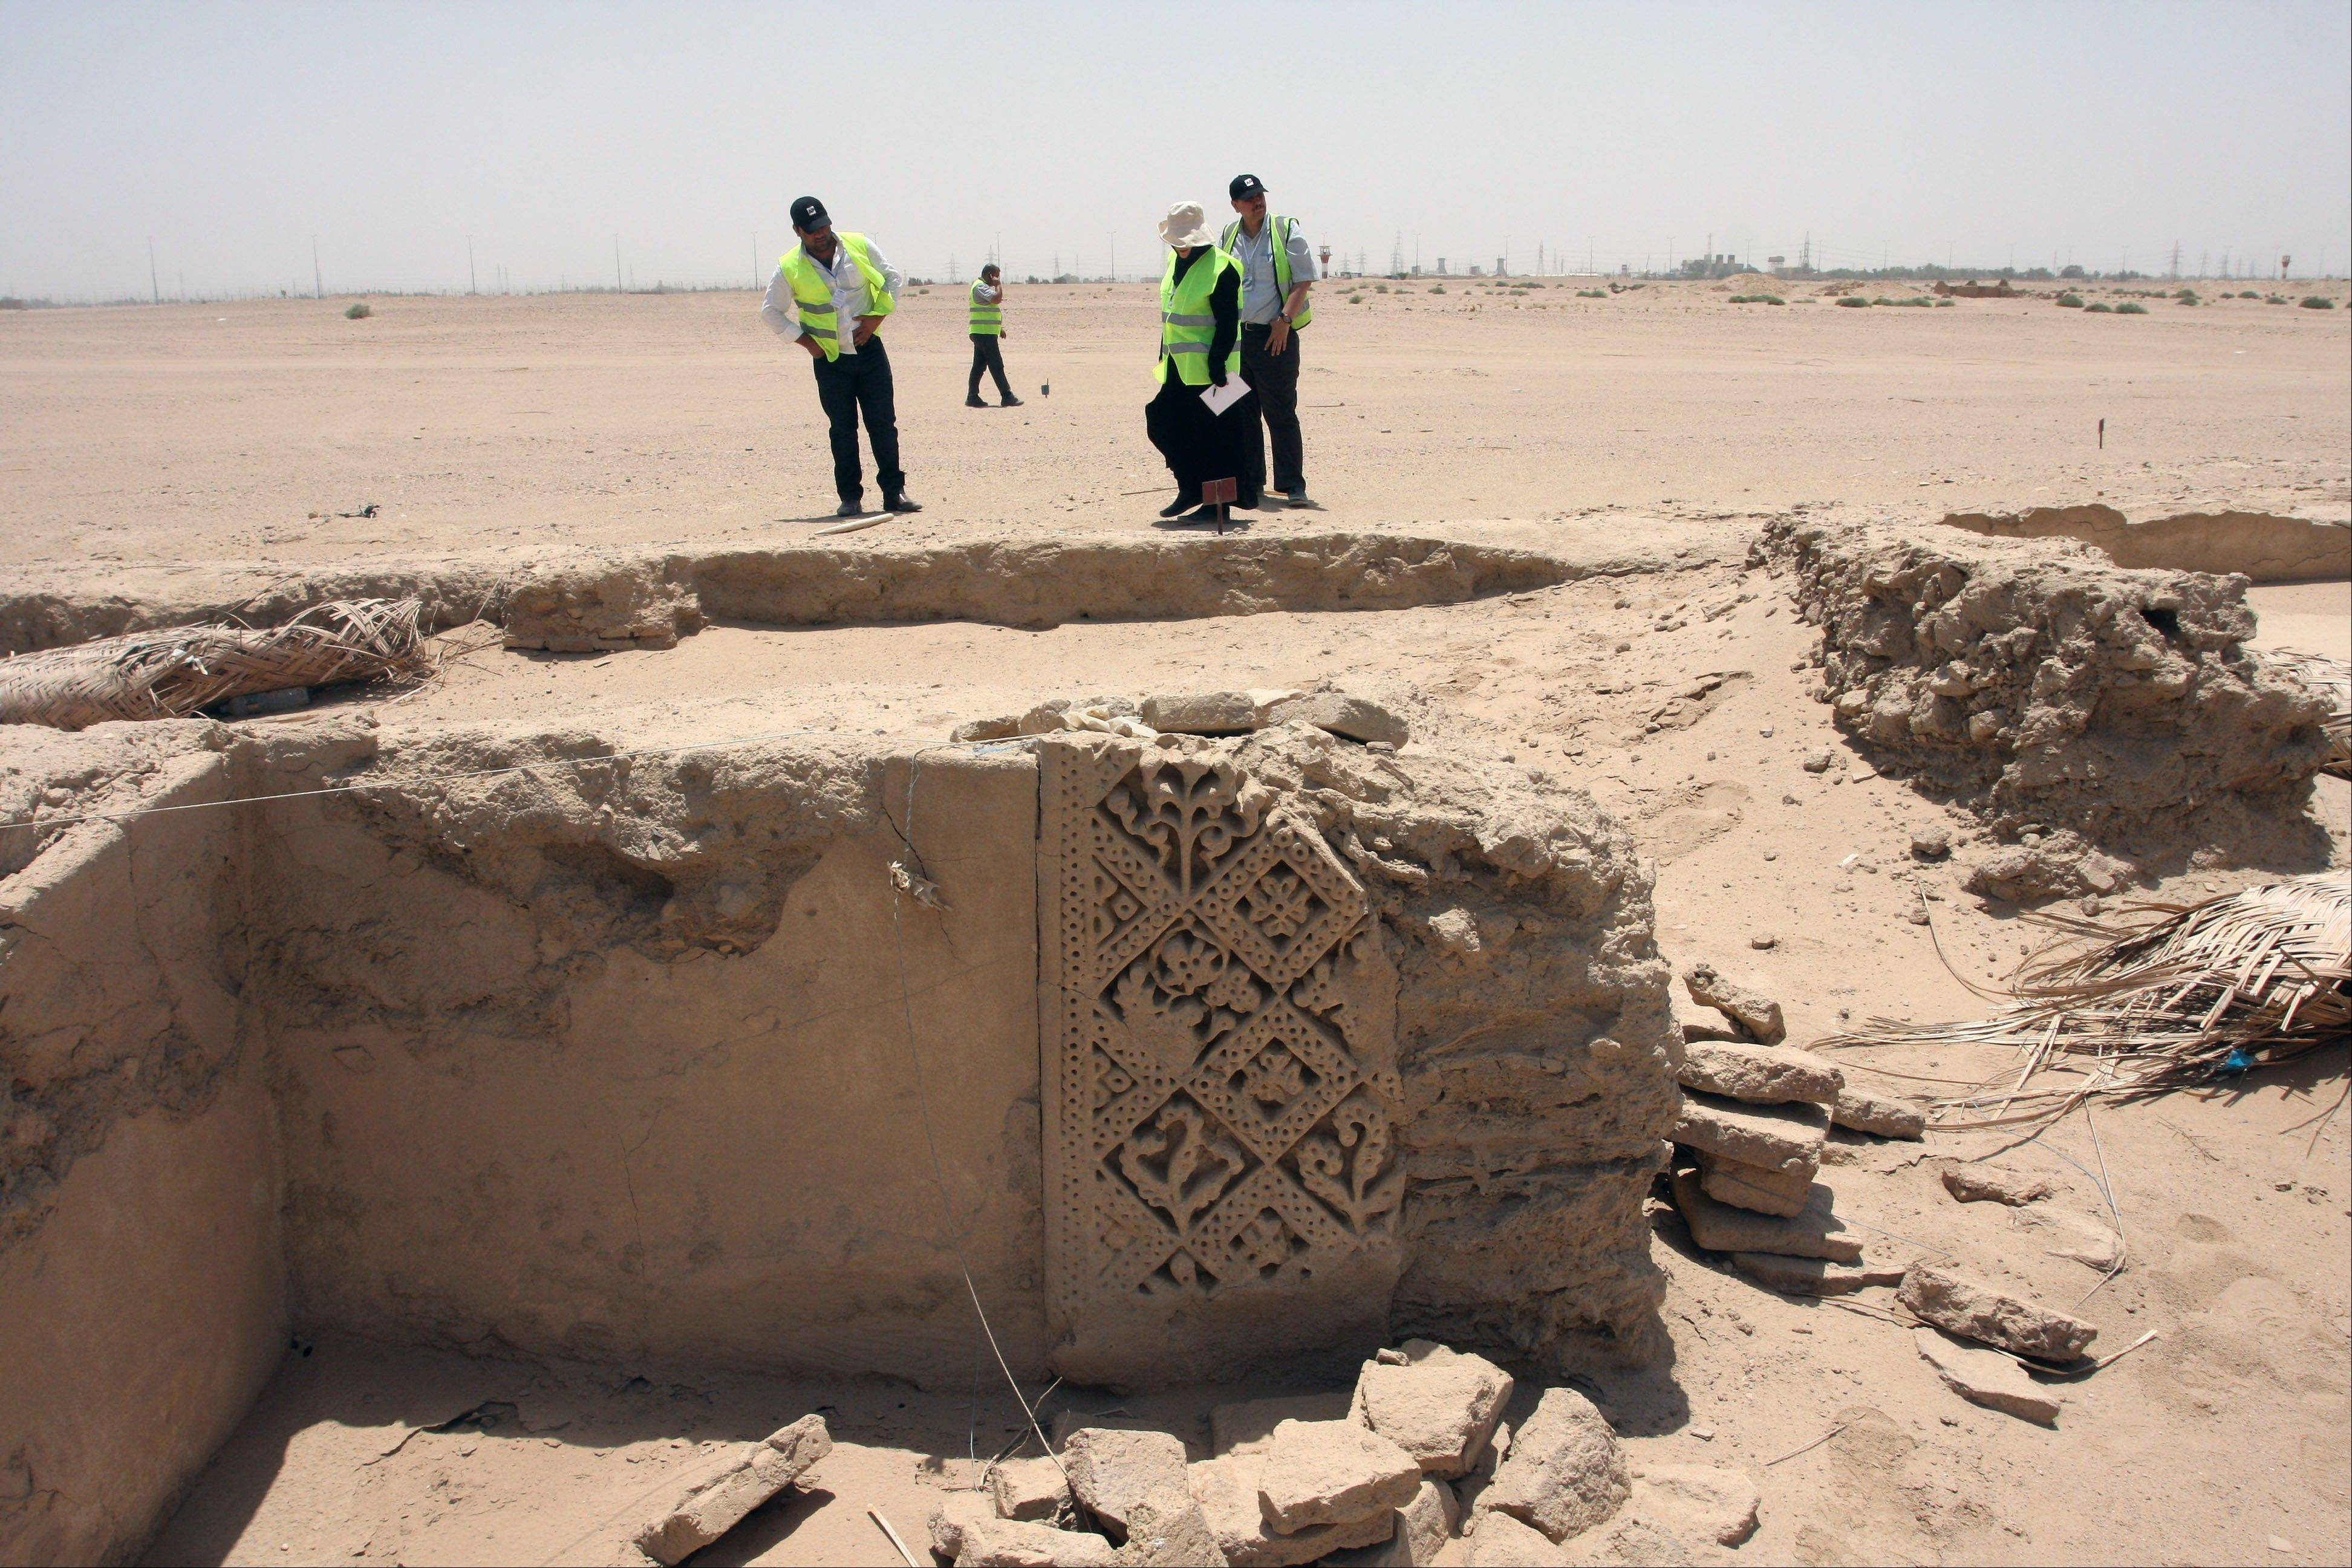 Archaeologists on July 10 stand next to ruins that scholars think may be from the legendary Arab Christian city of Hira.